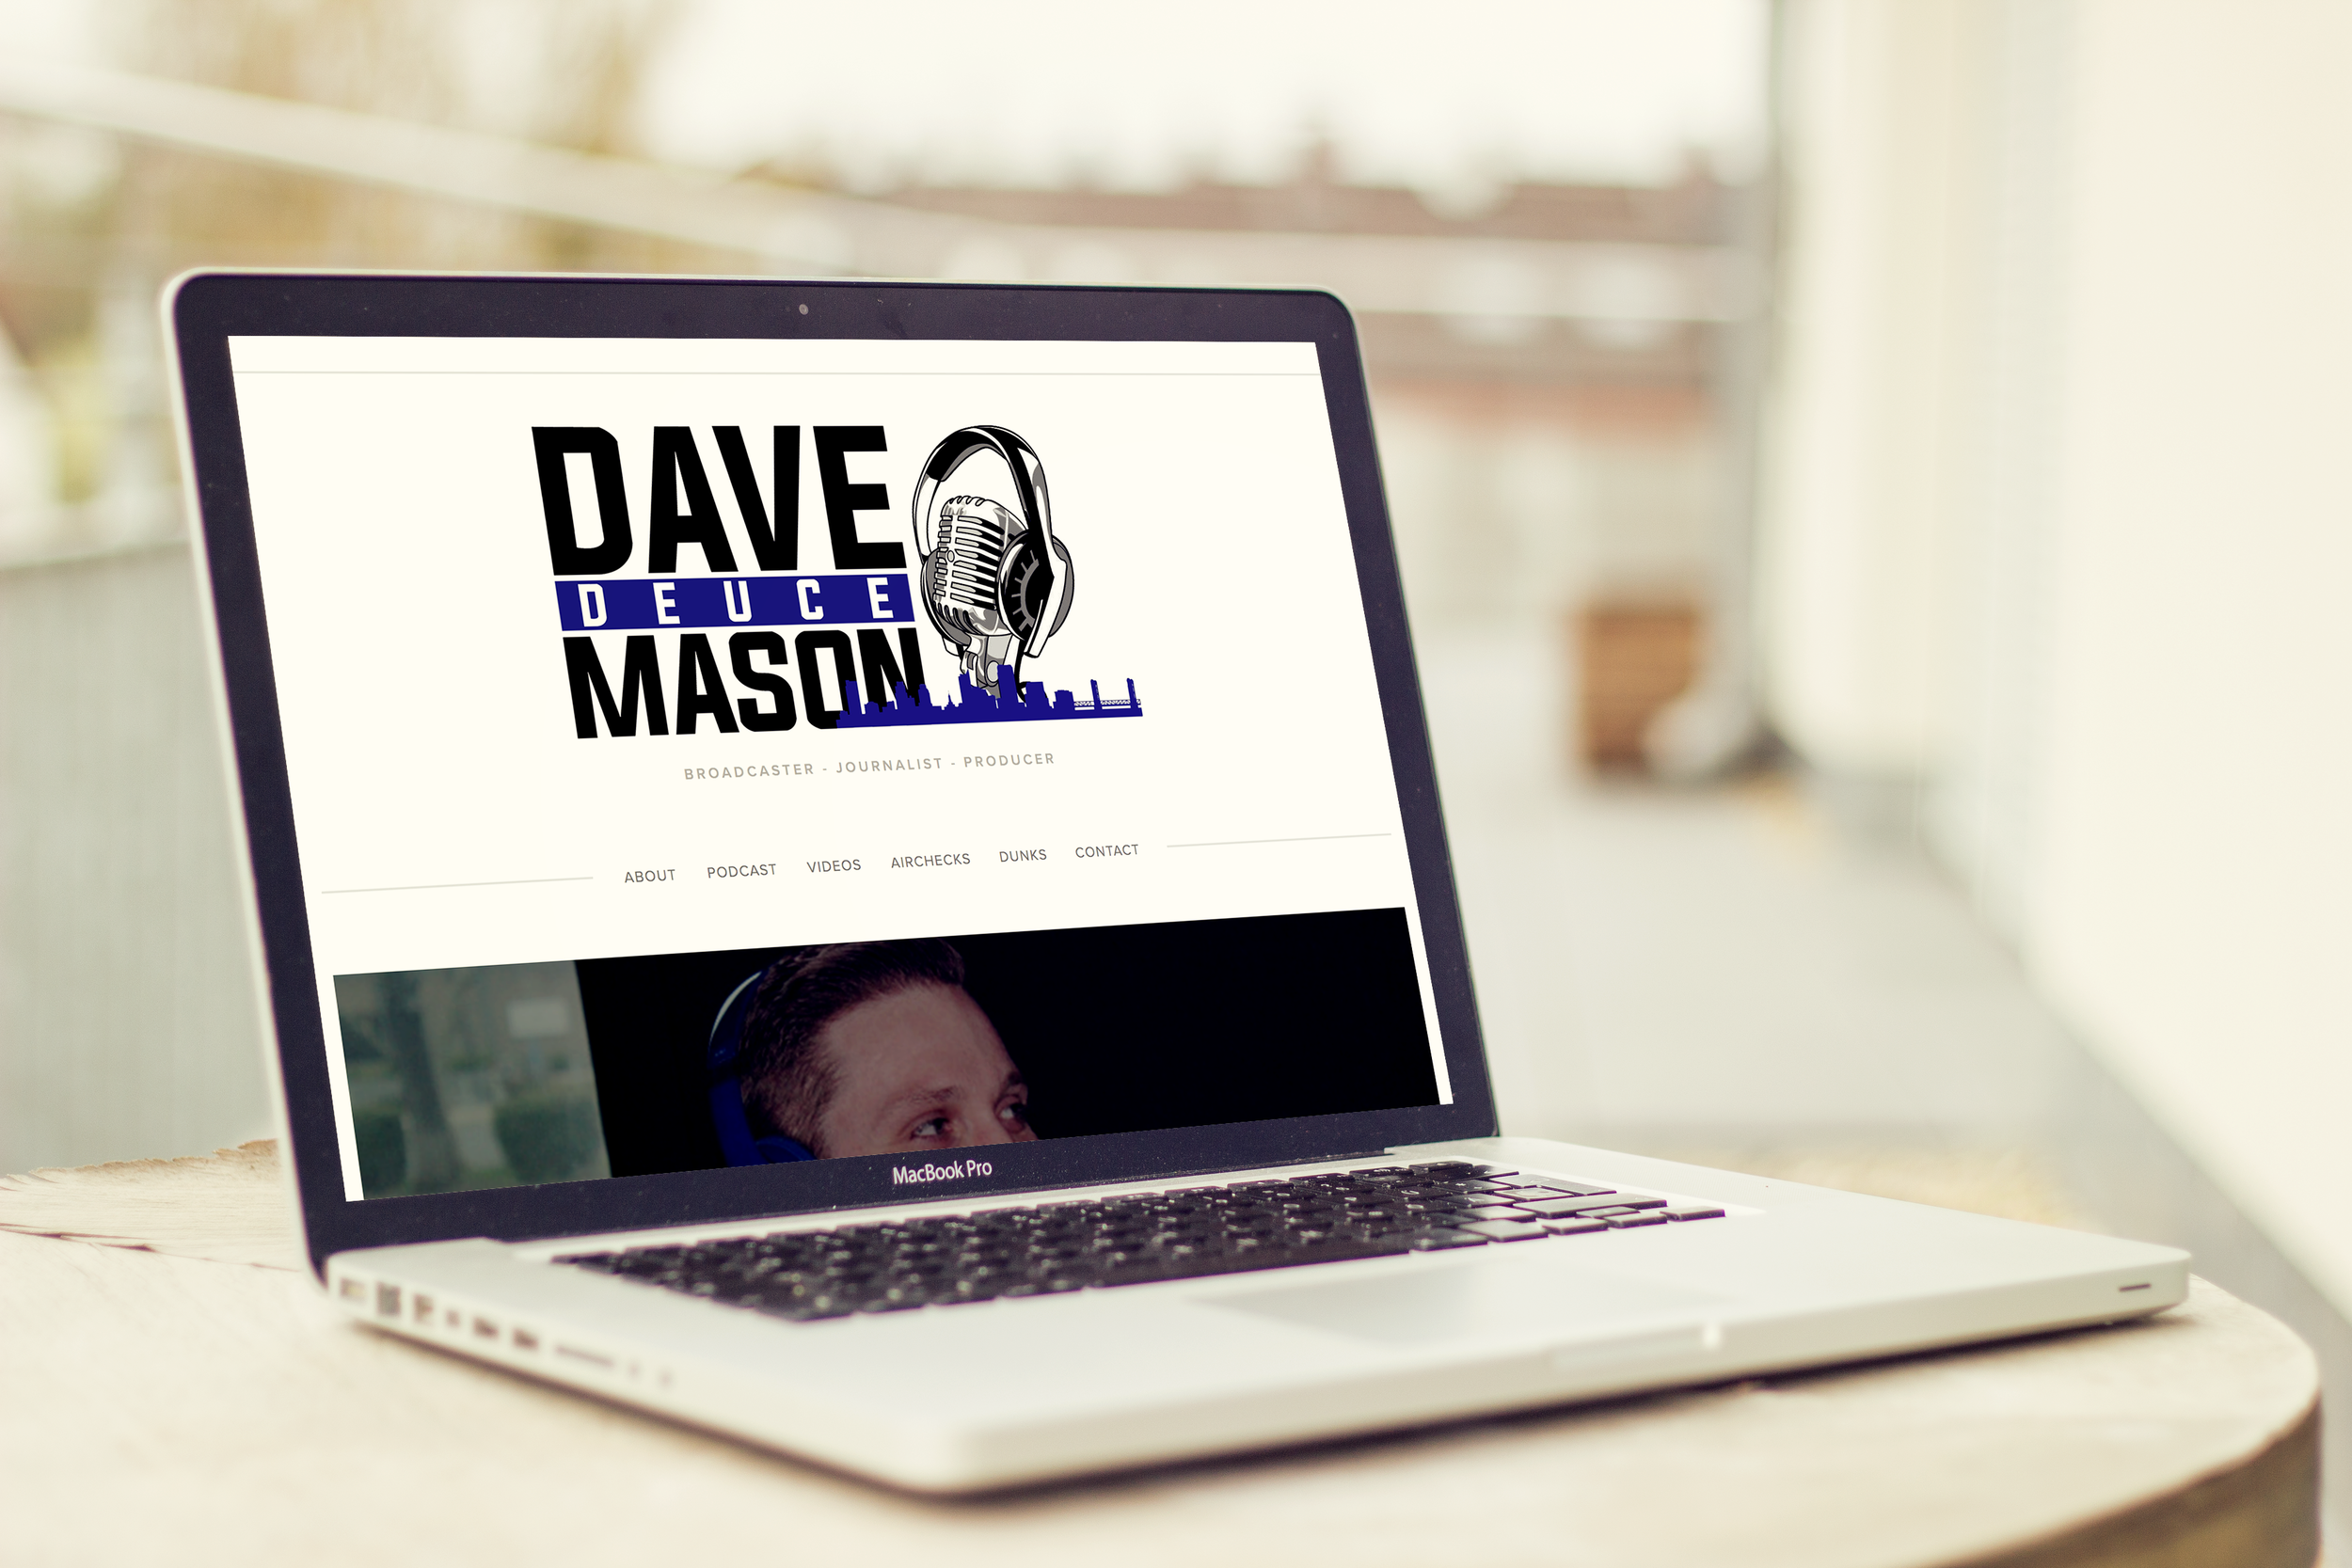 DAVE DEUCE MASON | web design  see the site here.